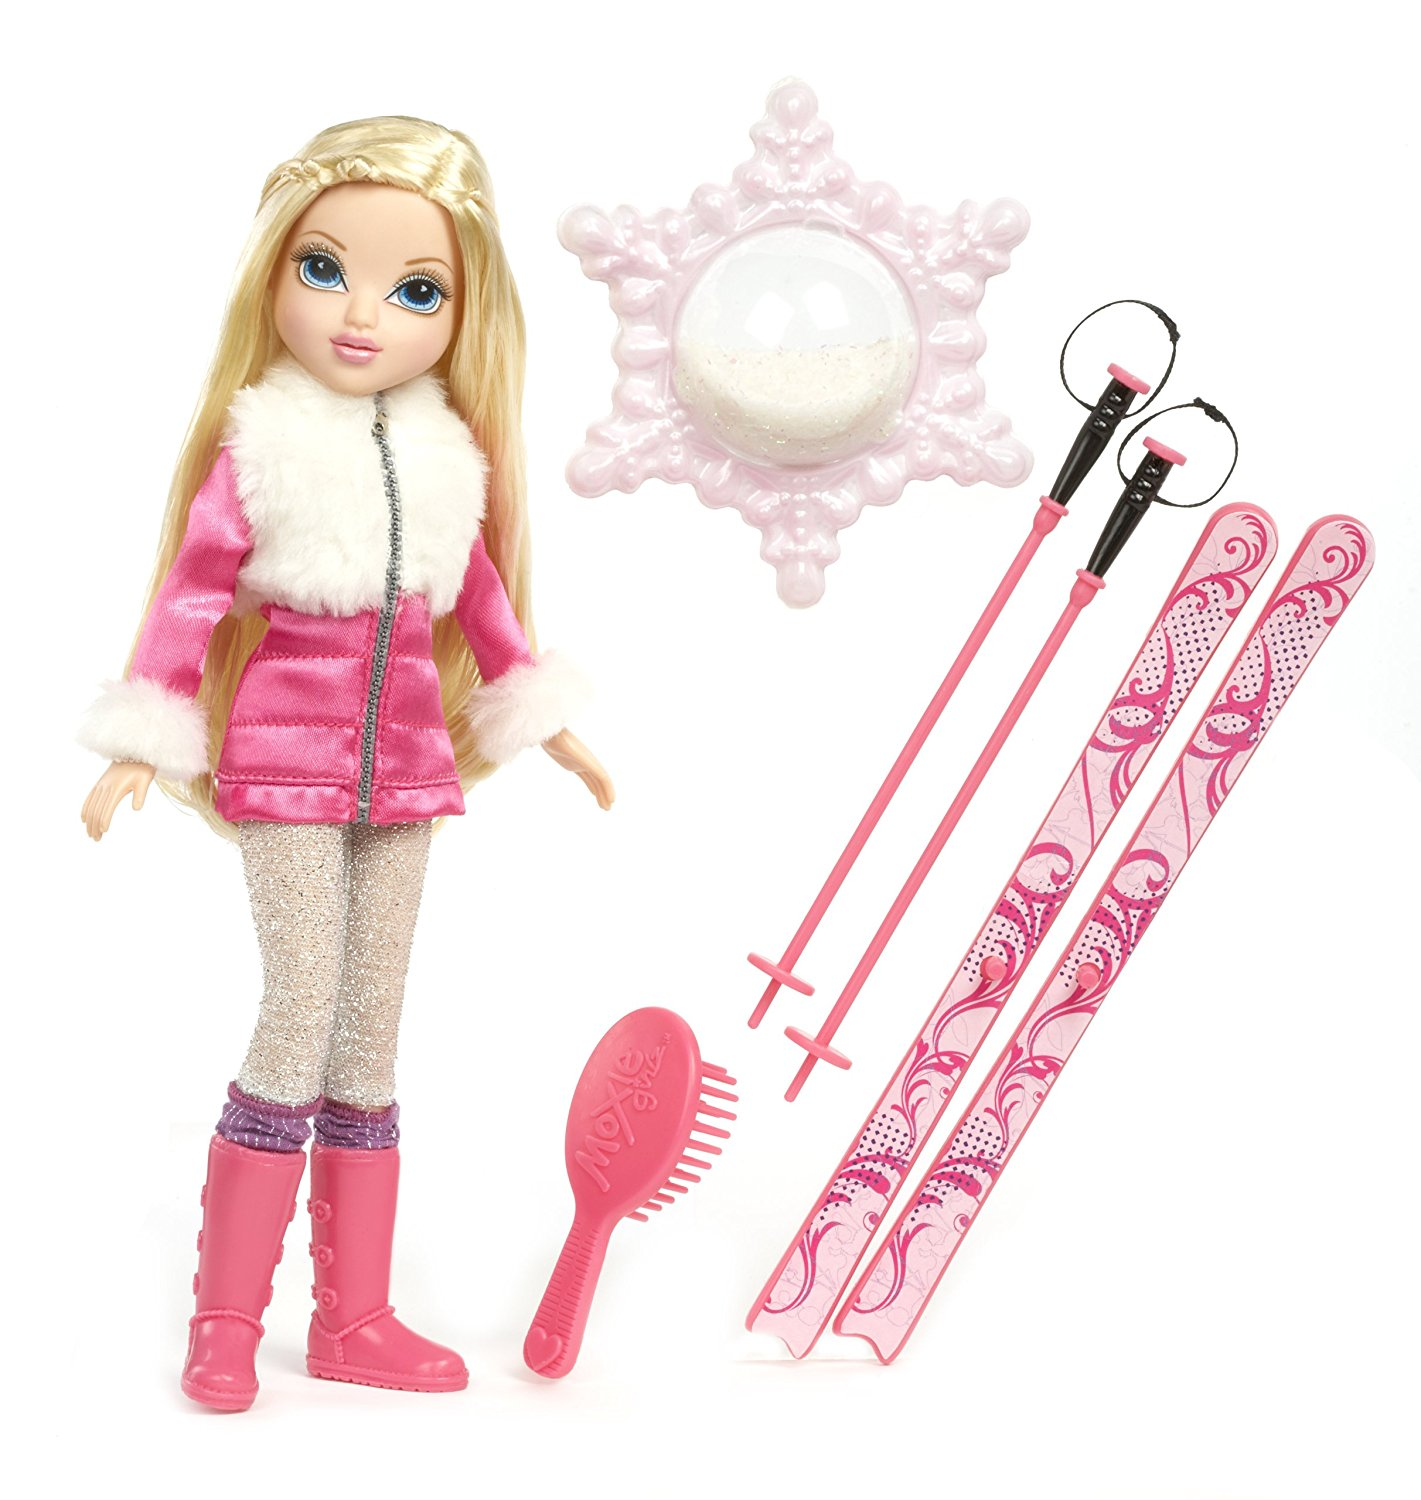 Magic Glitter Snow Doll Avery, One Moxie Girlz doll wearing a frosty cool Magic Snow outfit By Moxie Girlz Ship from US